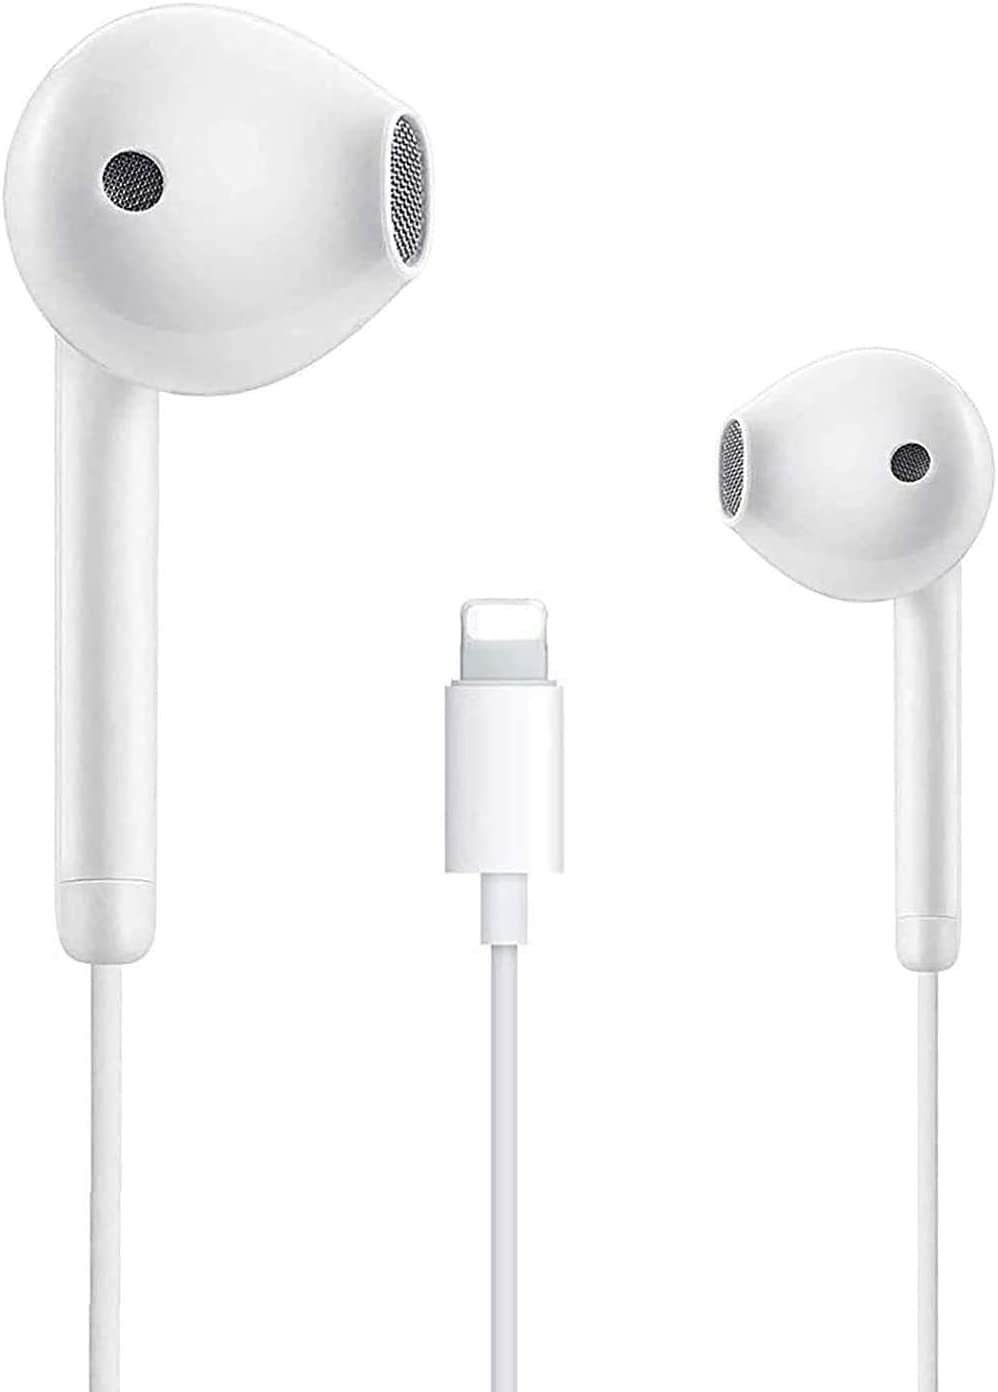 Lighting Connnecter Earbuds Earphones Wired Stereo Sound Headphones with Microphone Compatible with Apple iPhone 13/12/11 Mini Pro 7/8 Plus X/Xs/XR max iPad